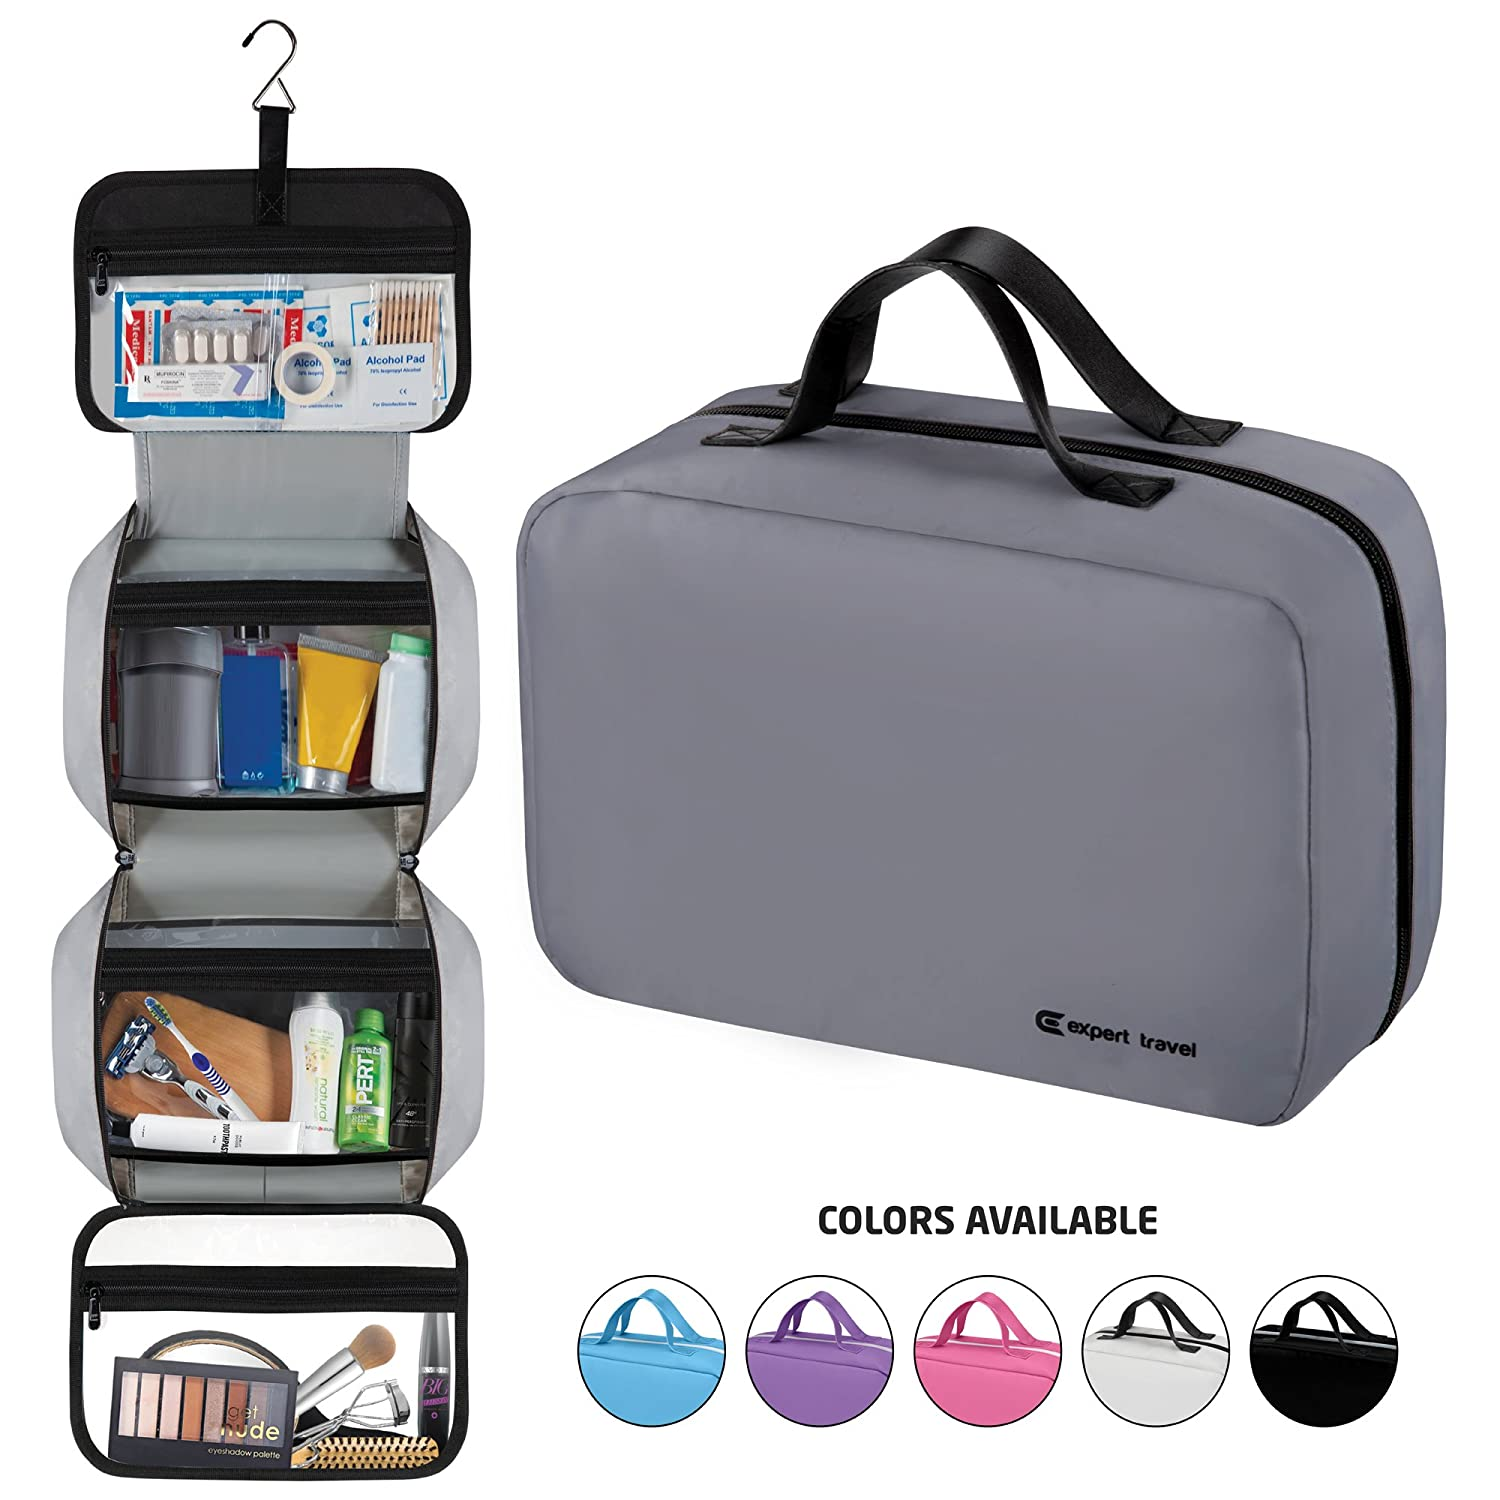 """Hanging Travel Toiletry Bag for Men and Women   Makeup Bag   Cosmetic Bag   Bathroom and Shower Organizer Kit   Leak Proof   Large (34""""x11"""")"""